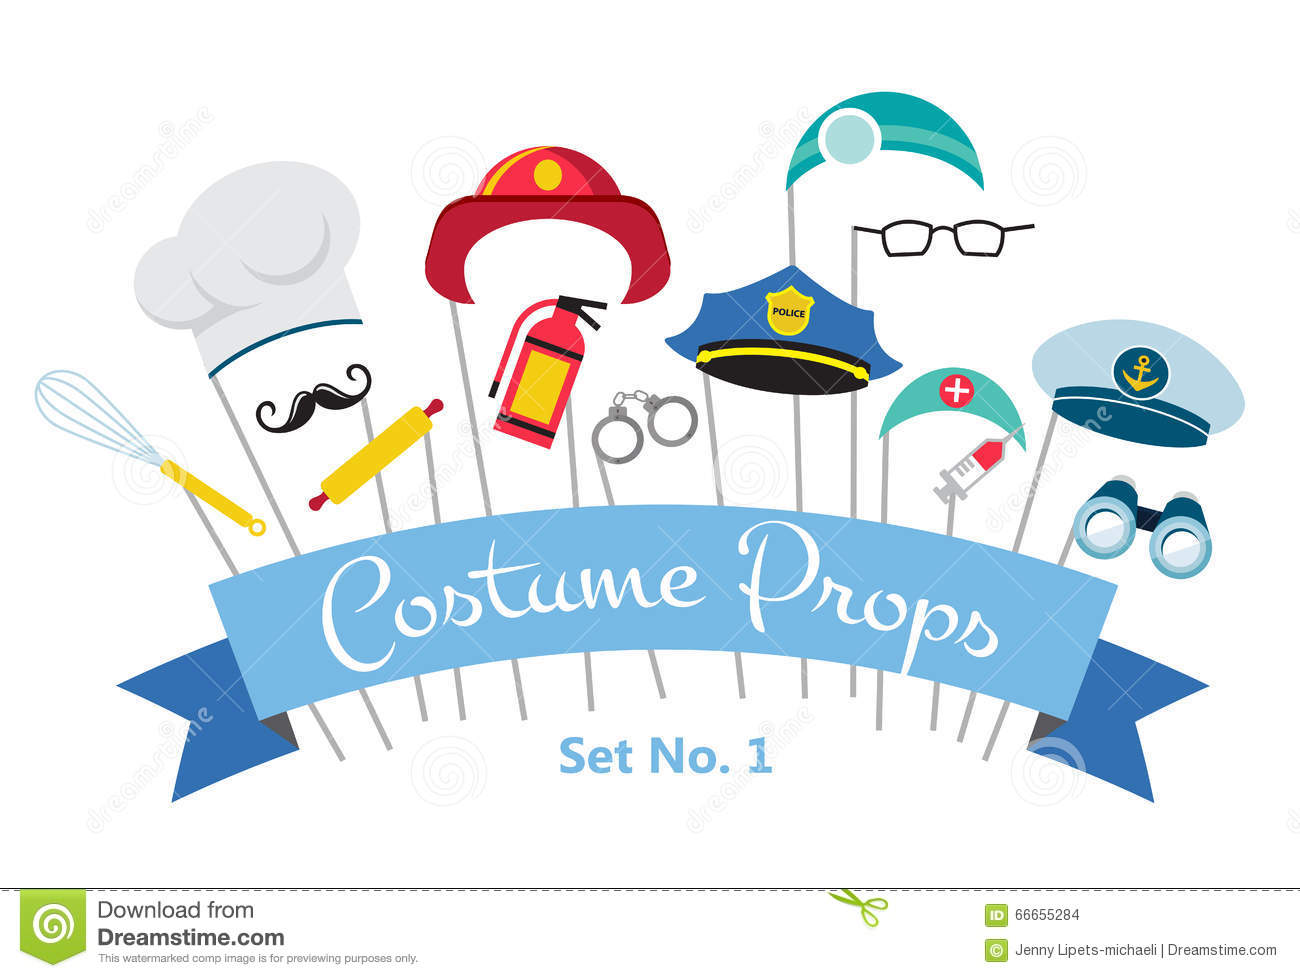 costume party profession props - Costume Props